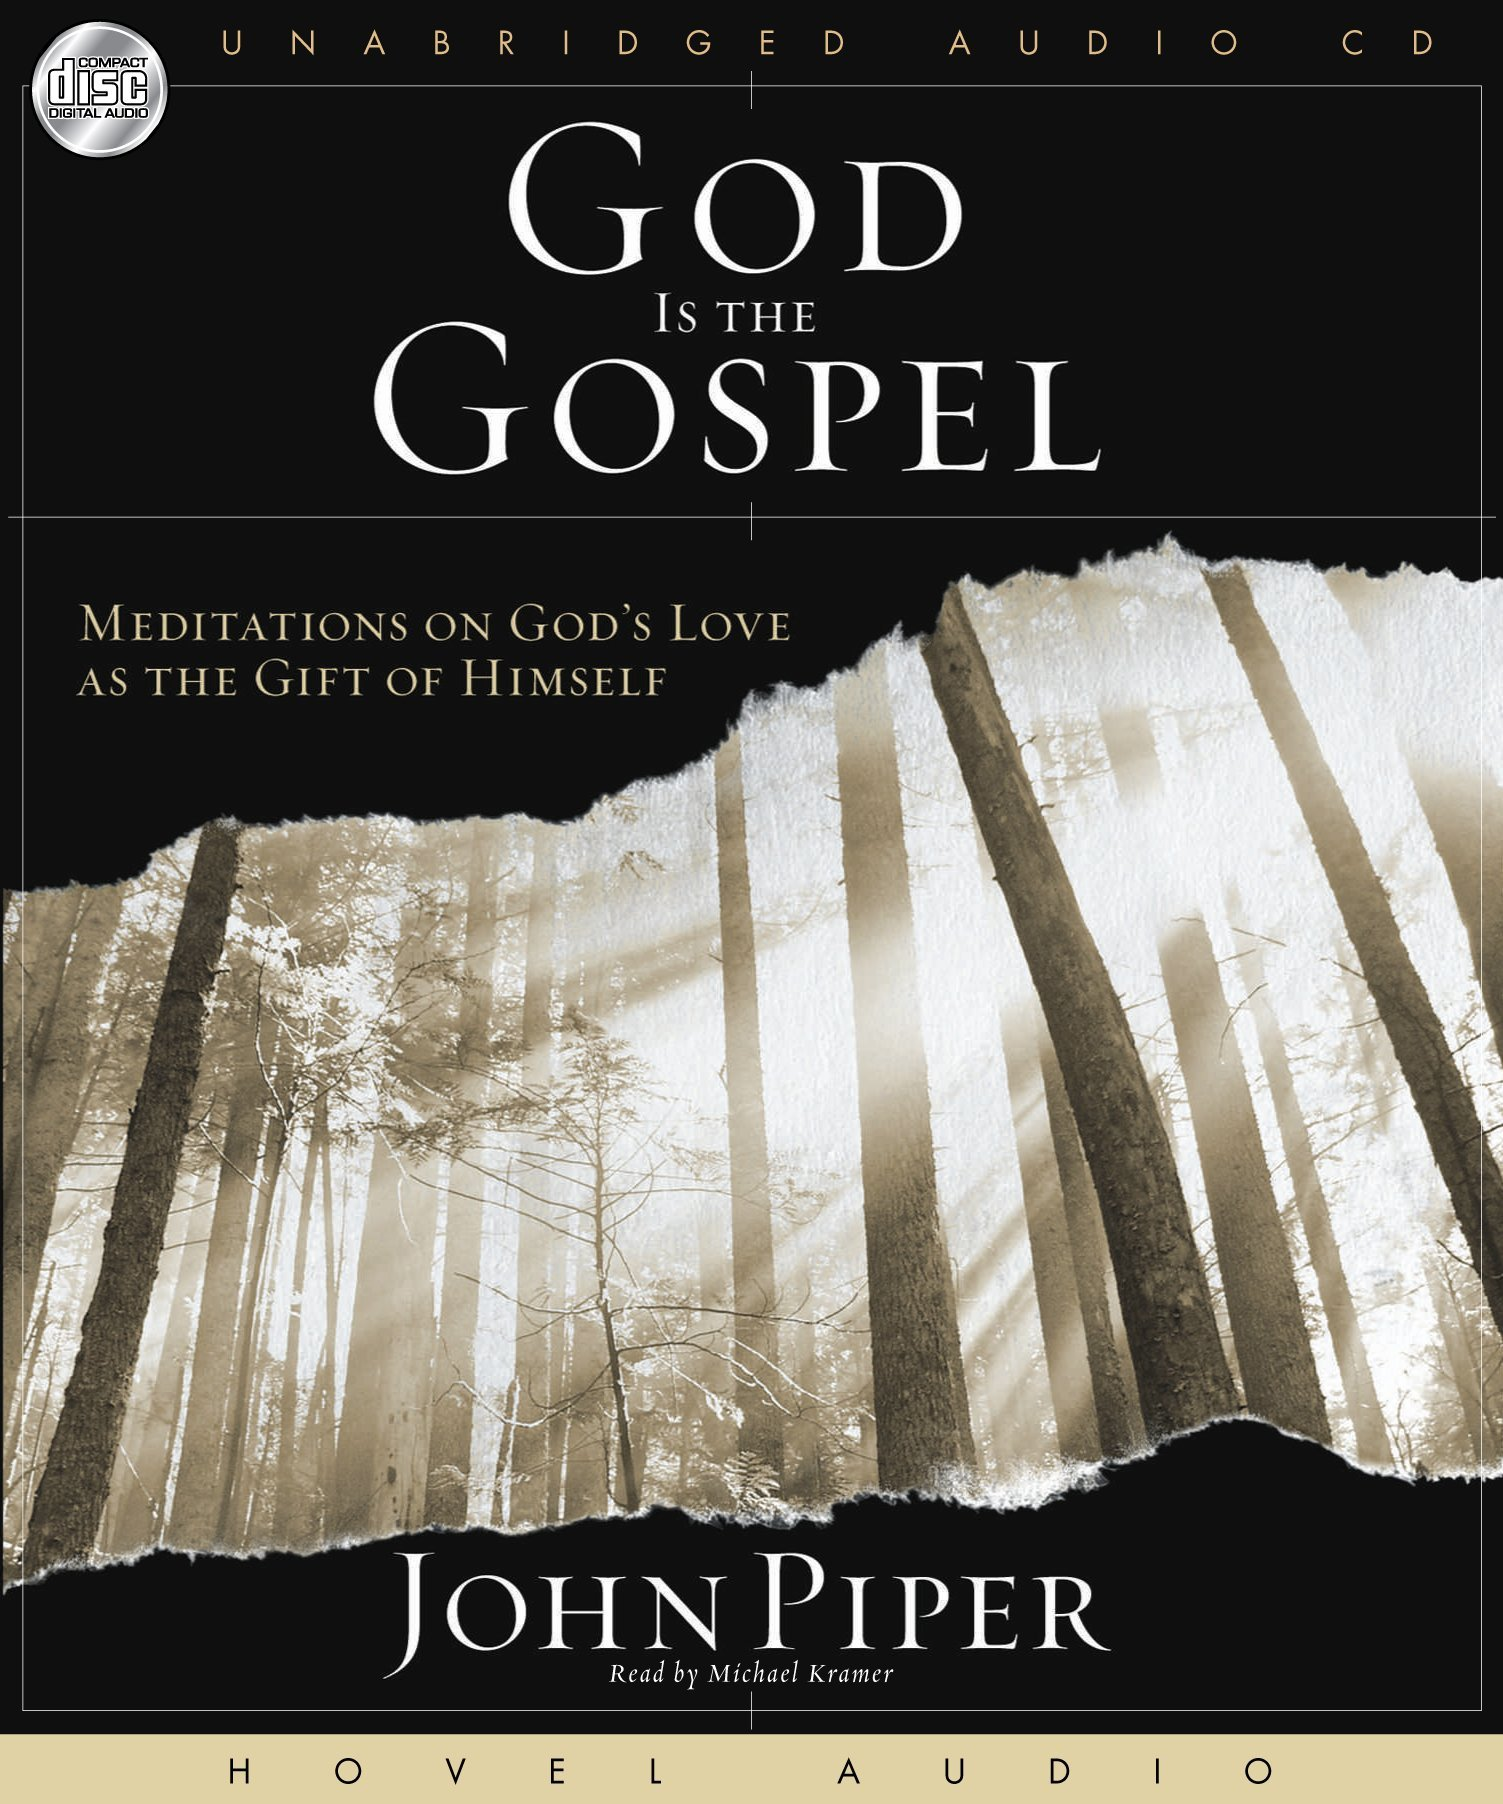 God Is the Gospel: Meditations on God's Love As the Gift of Himself - MP3 Text fb2 ebook